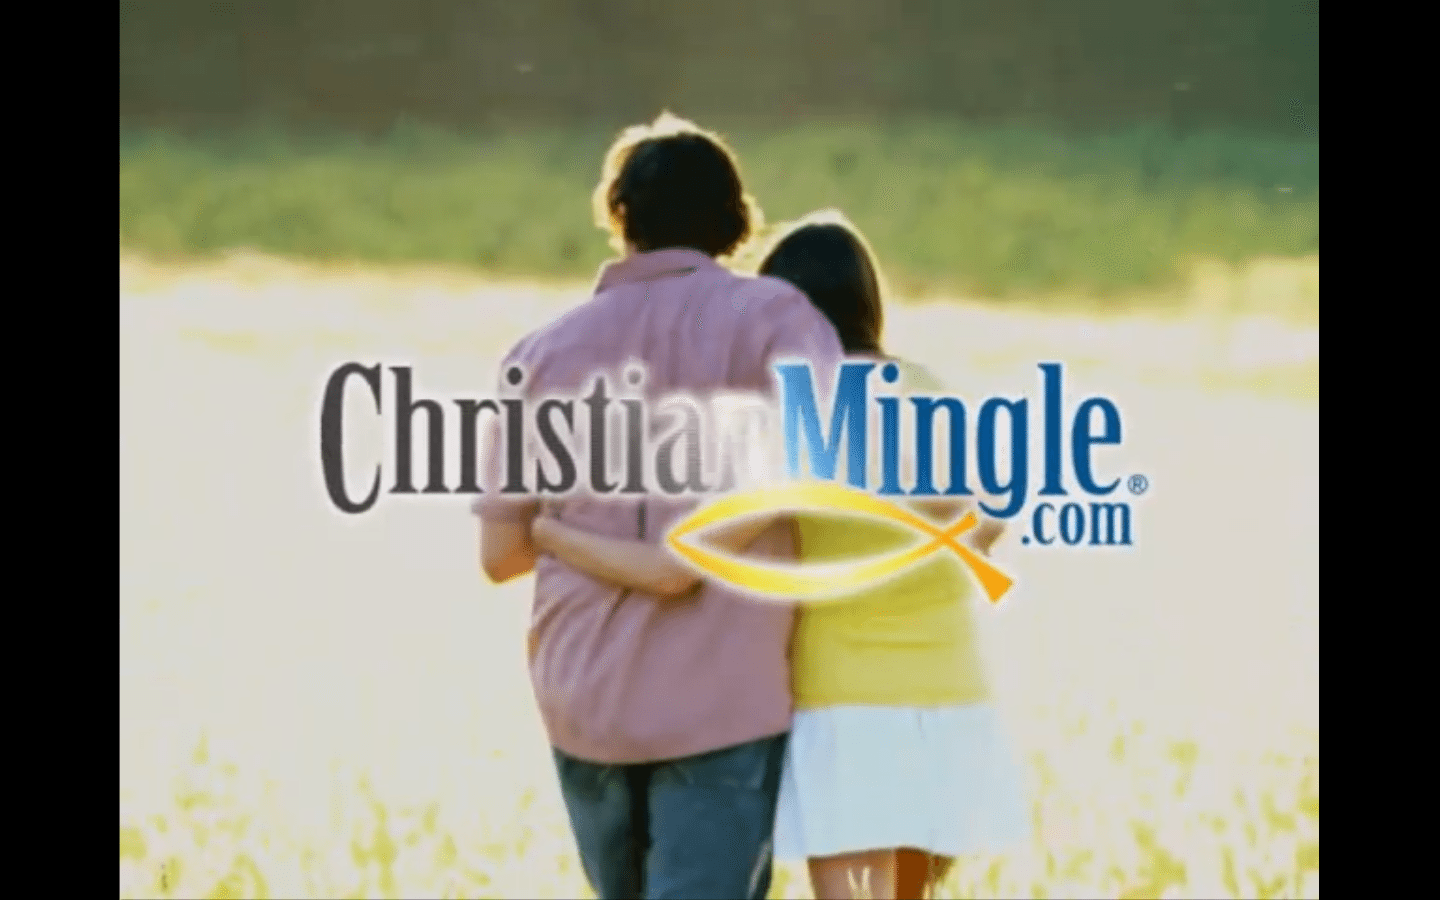 christian singles mingle World's best 100% free christian dating site meet thousands of christian singles in your area with mingle2's free christian personal ads and mingle 2 is 100% free.